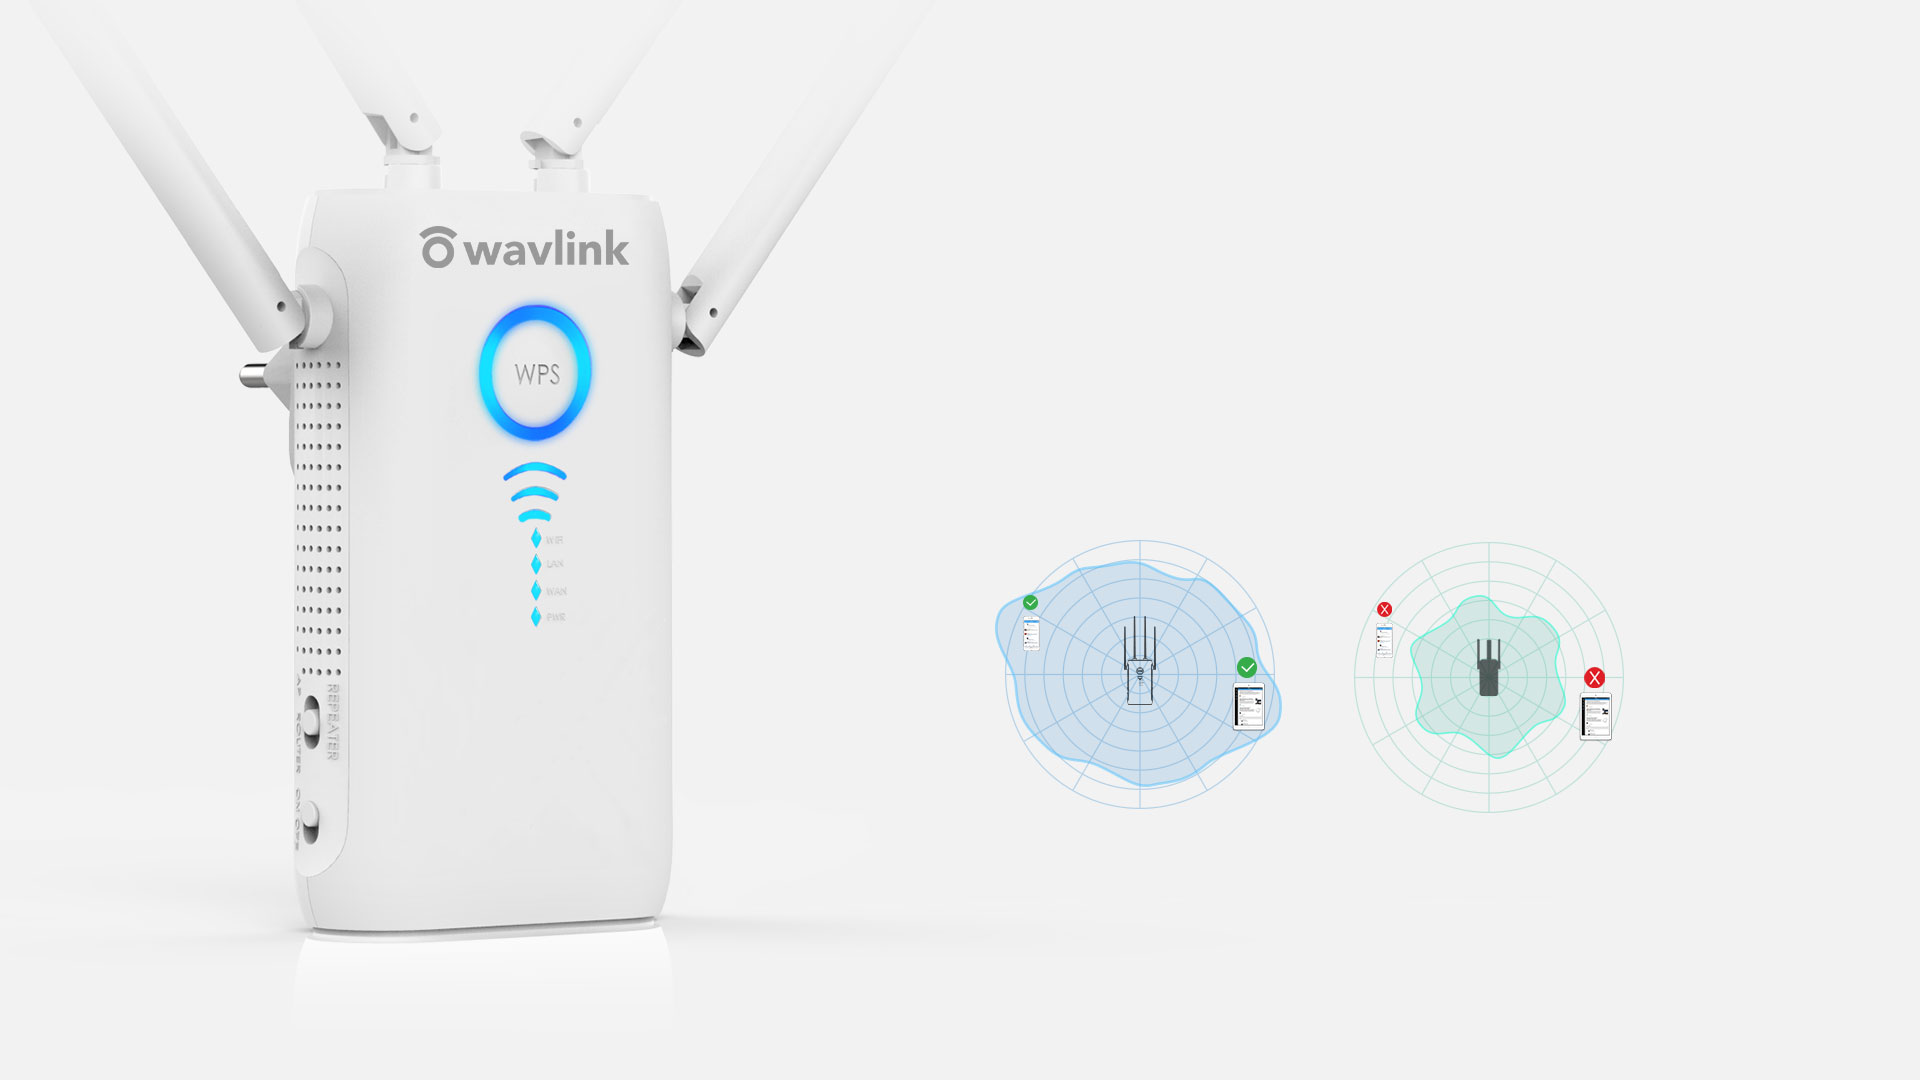 wavlink,wn579g3,1200Mbps,Reliable, beamforming_link